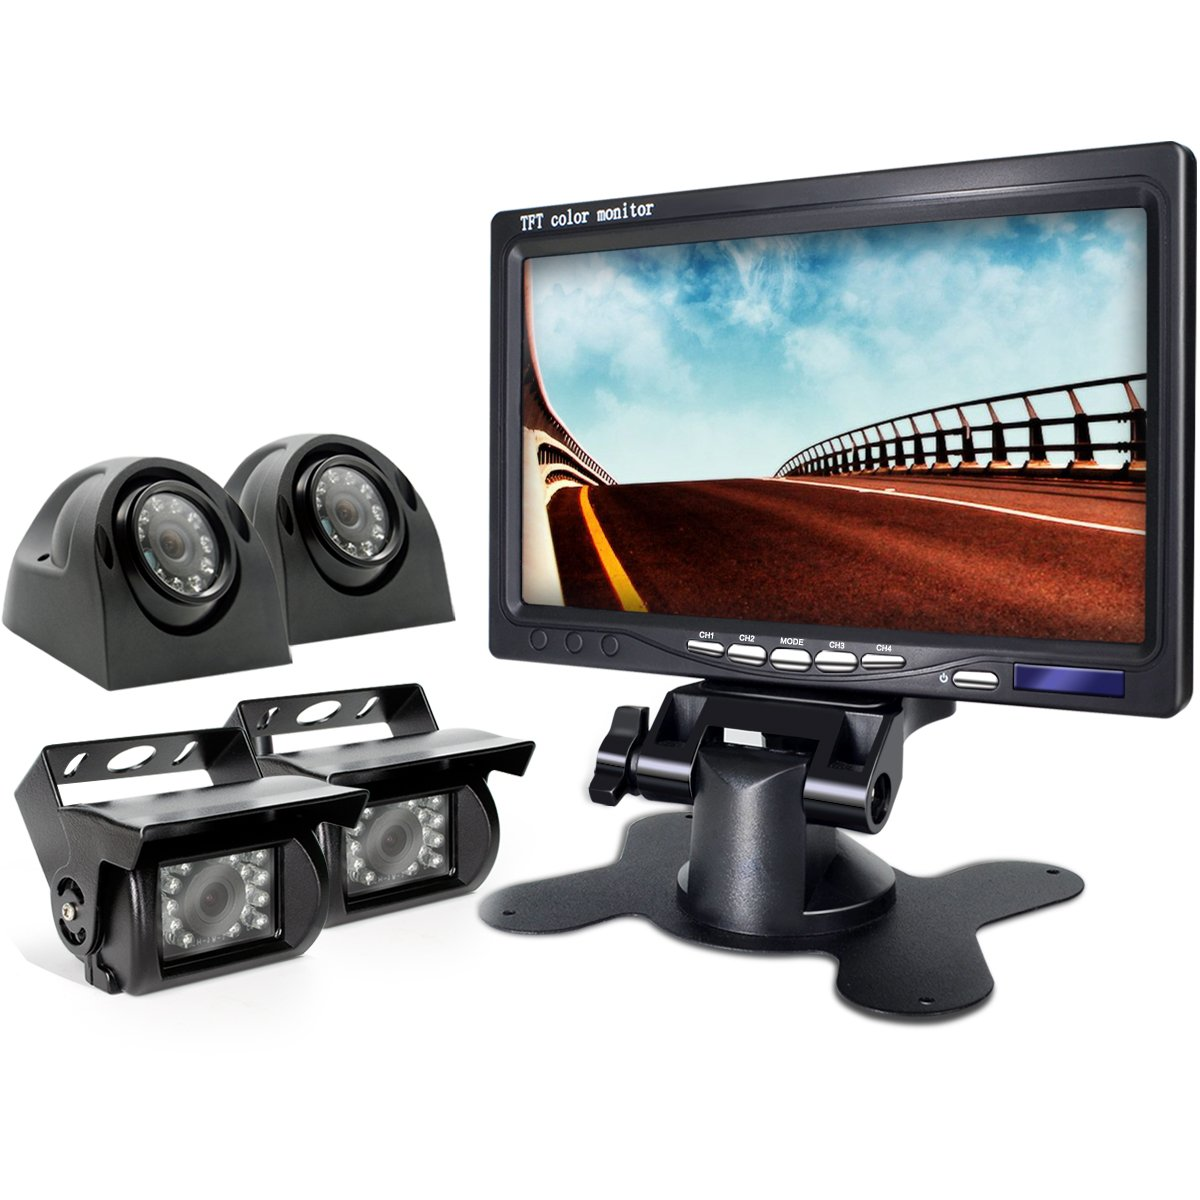 Backup Camera Wired 7 Inch Split Quad Monitor and Camera Kit For Truck/Semi-Trailer/Box Truck/RVTrailer/Bus/Tractor When Reversing Parking Backing to Avoid Blind Area.